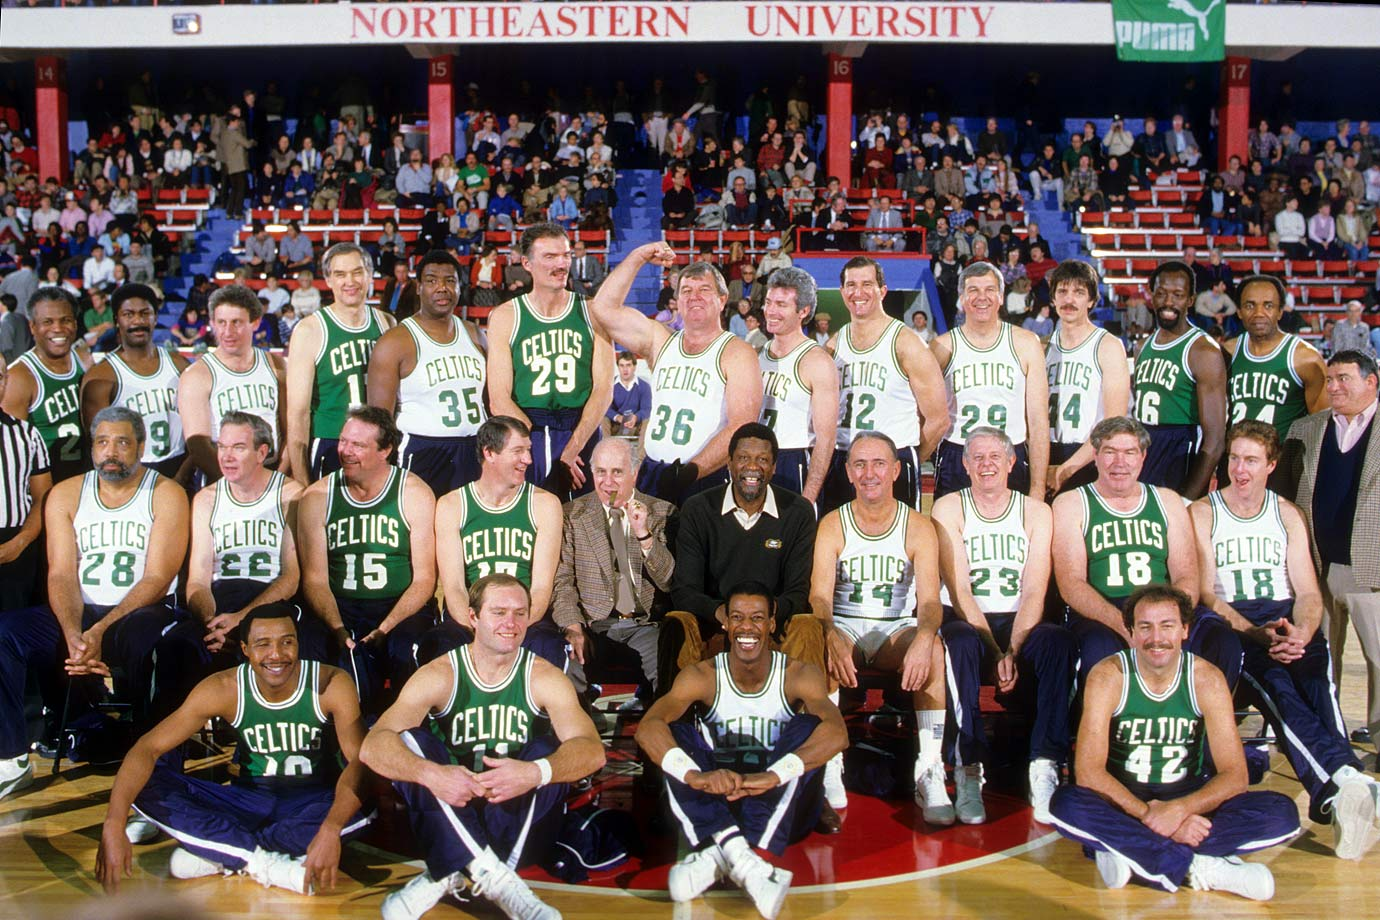 John Havlicek poses alongside Red Auerbach, Bill Russell, Bob Cousy other former Celtics during the Old Timers Night reunion at Matthews Arena on Northeastern University campus in Boston.